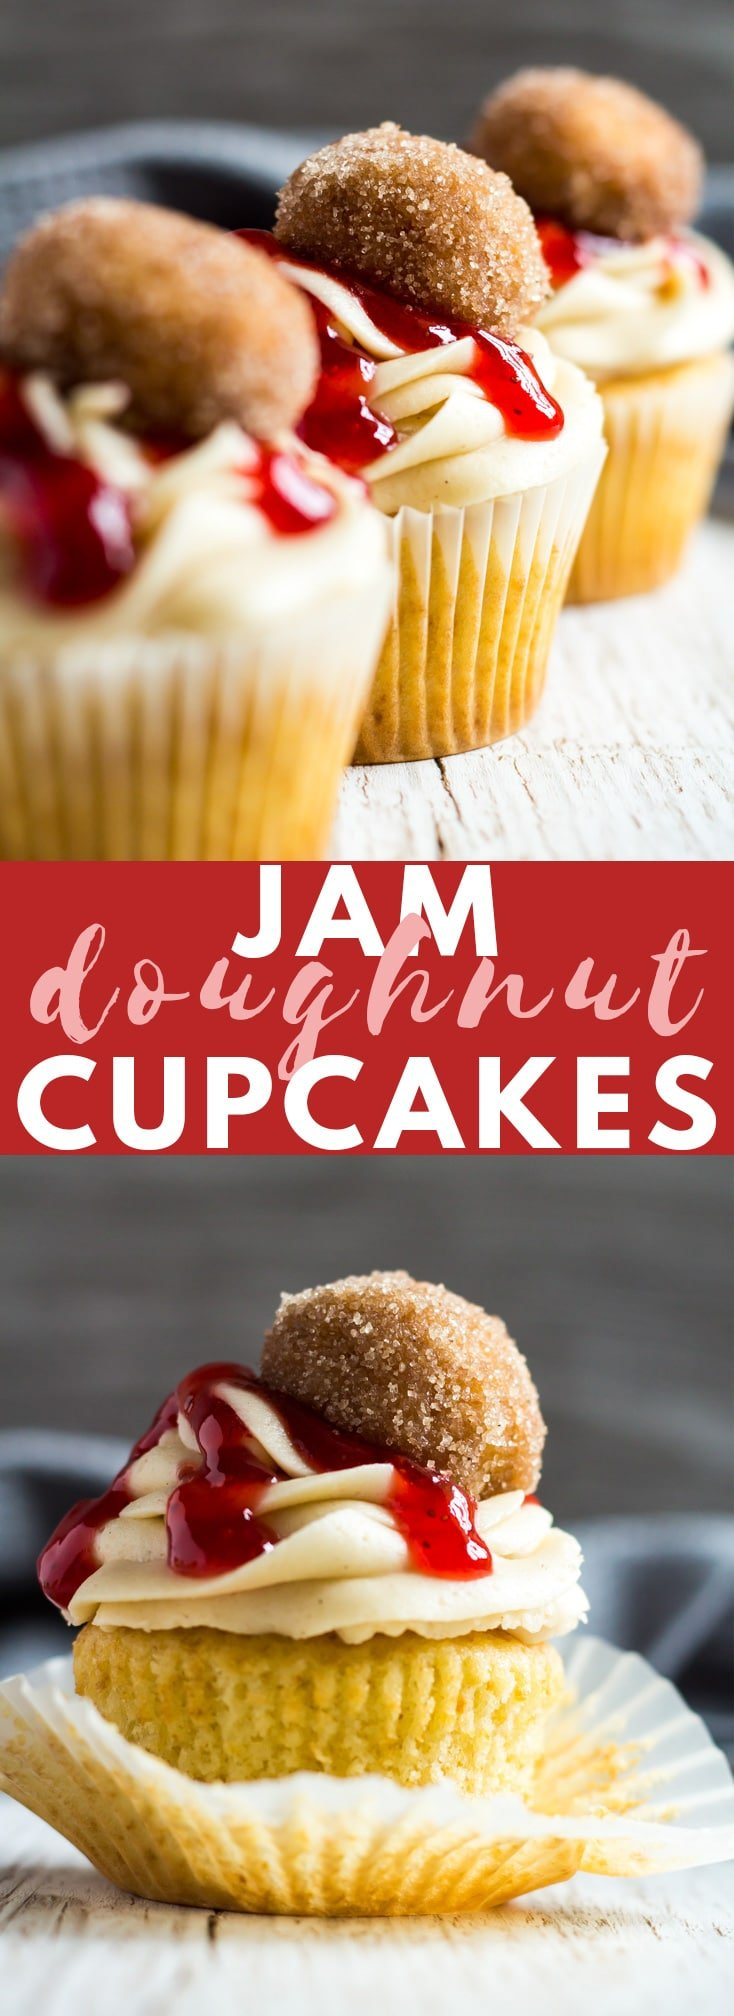 Jam Doughnut Cupcakes - Deliciously moist and fluffy vanilla-infused cupcakes filled with strawberry jam, and topped with a cinnamon-spiced buttercream frosting, and homemade doughnuts!